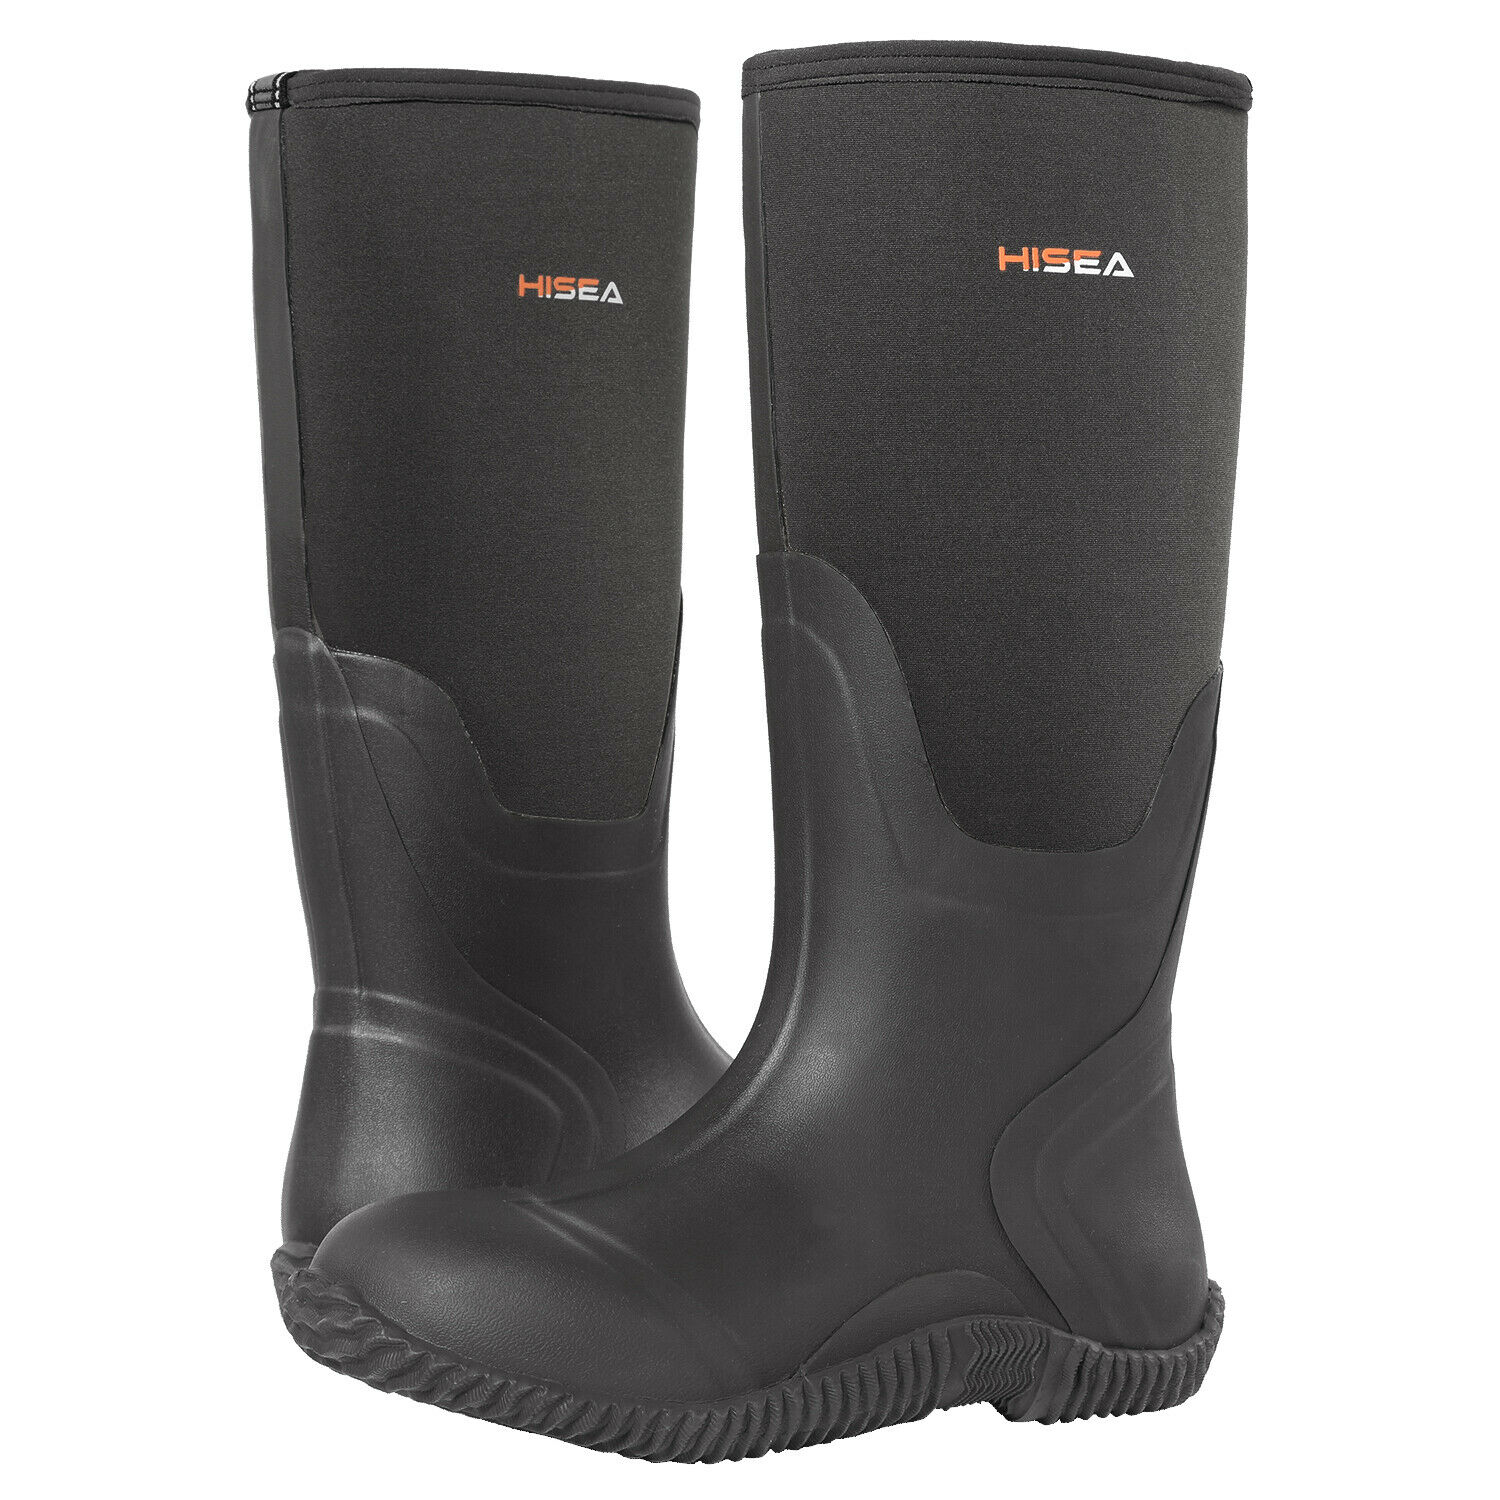 a pair of black HISEA Outdoor Muck Boots for winter hunting boot